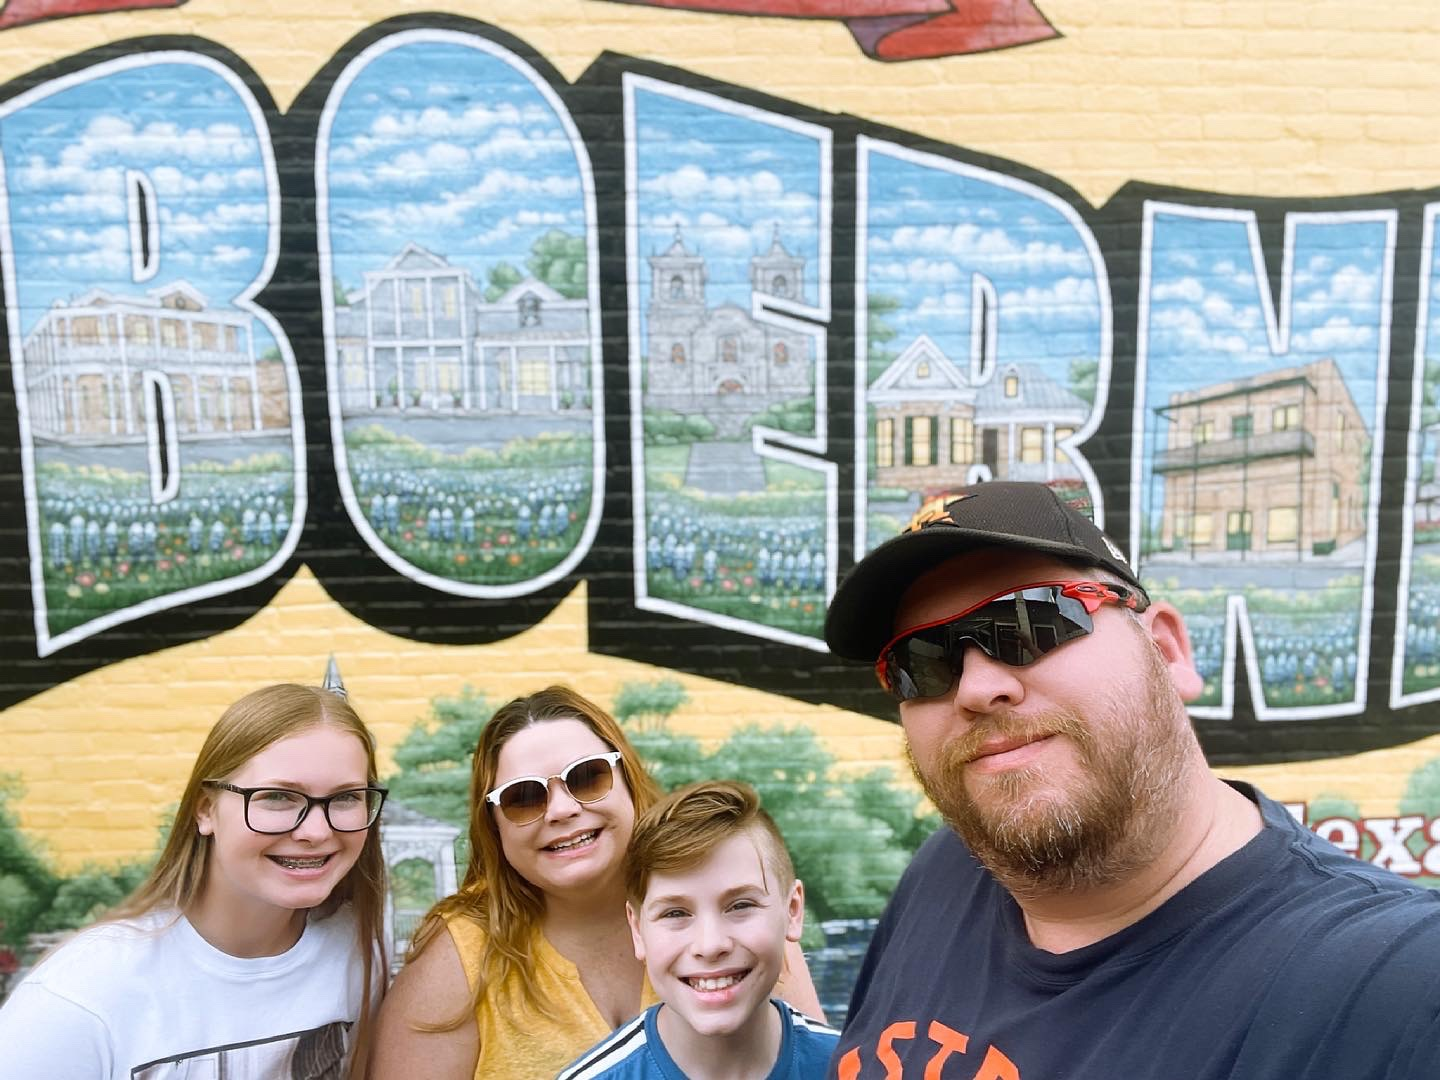 Family Friendly Things To Do In Boerne Texas